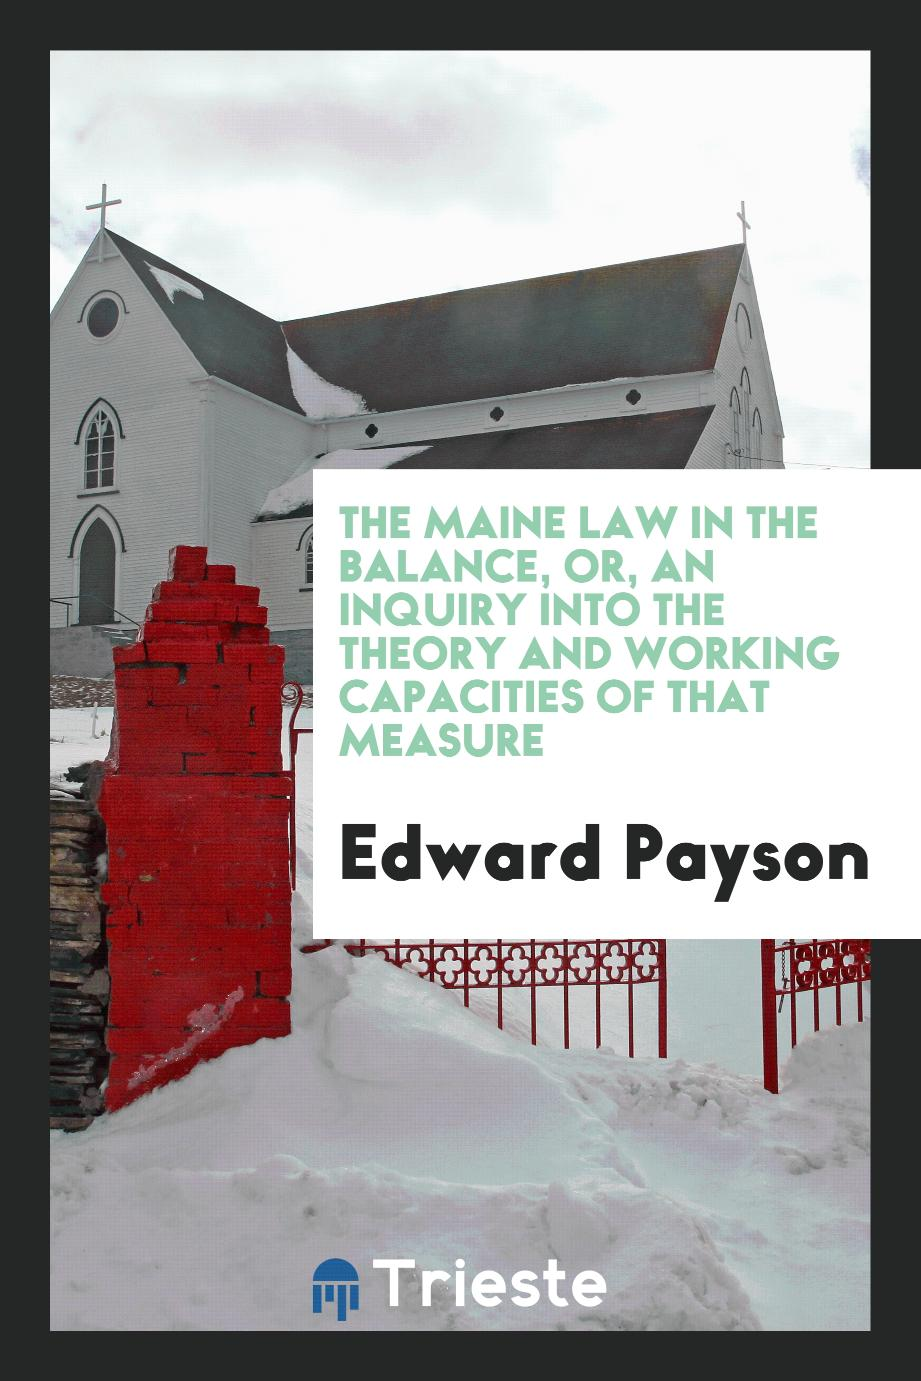 The Maine Law in the Balance, Or, An Inquiry Into the Theory and Working Capacities of that Measure